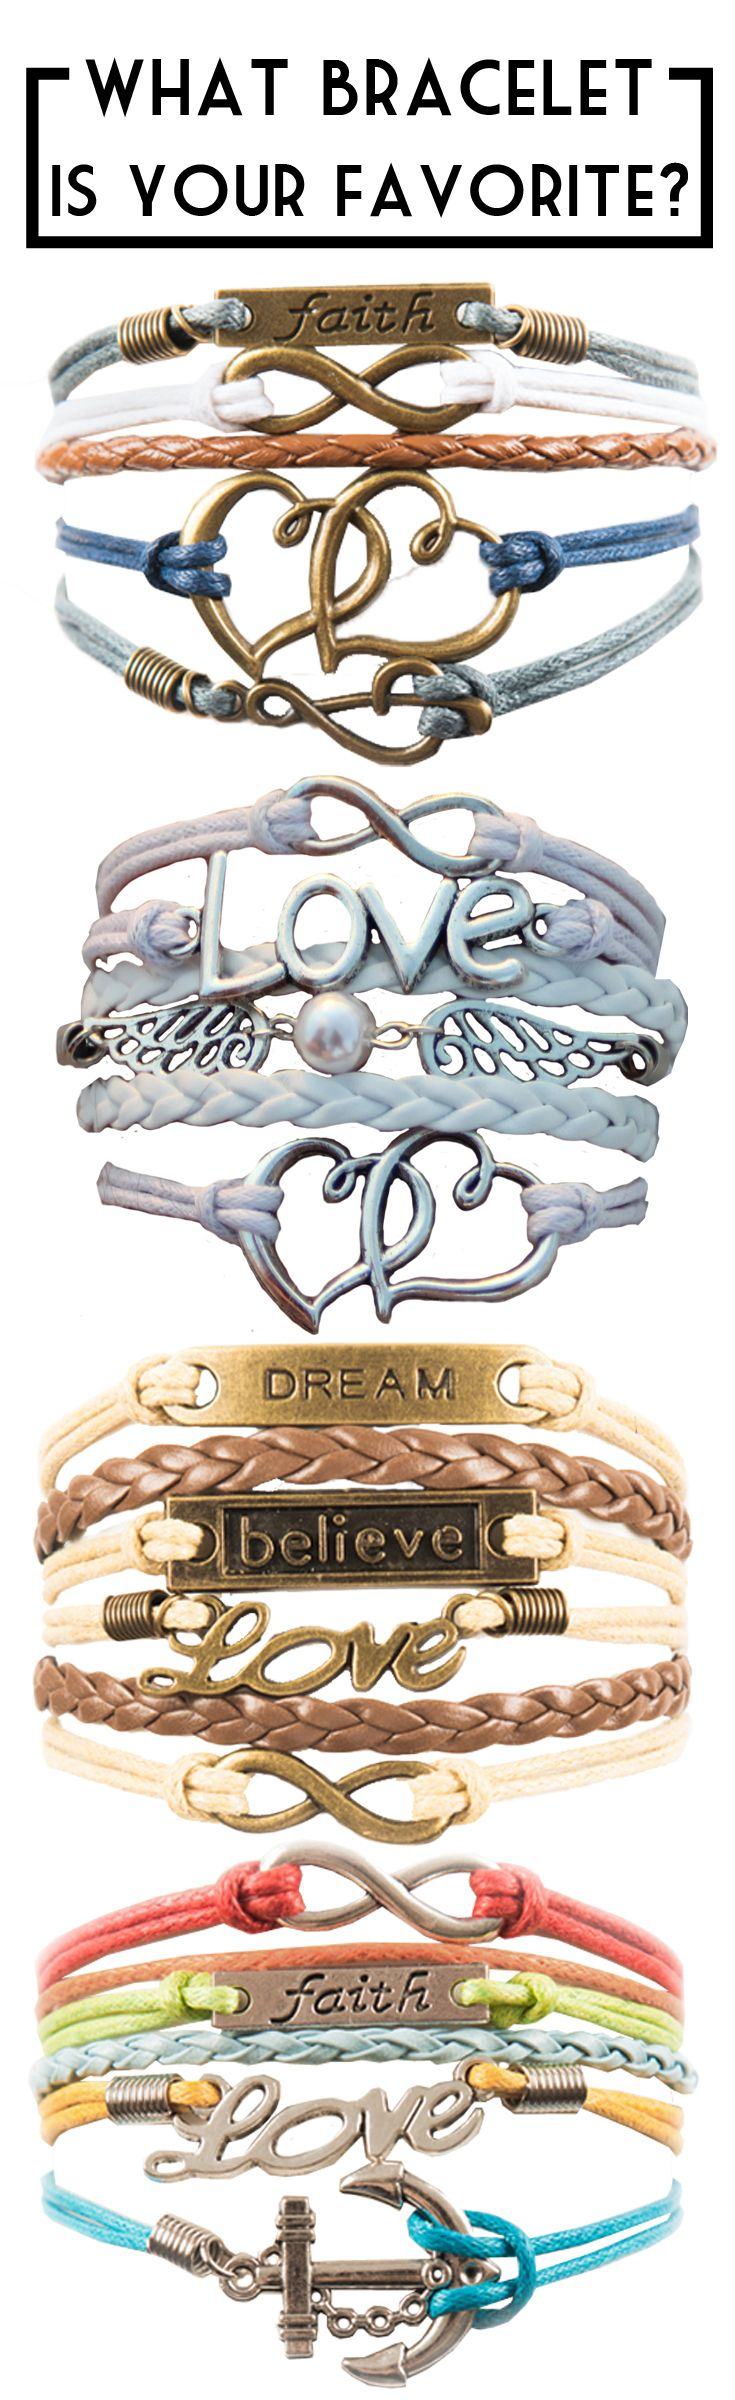 What bracelets are your favorite?!? For a limited time get up to 3 of our best selling bracelets for FREE. Just pay shipping. Pin it to save this great deal for later!!